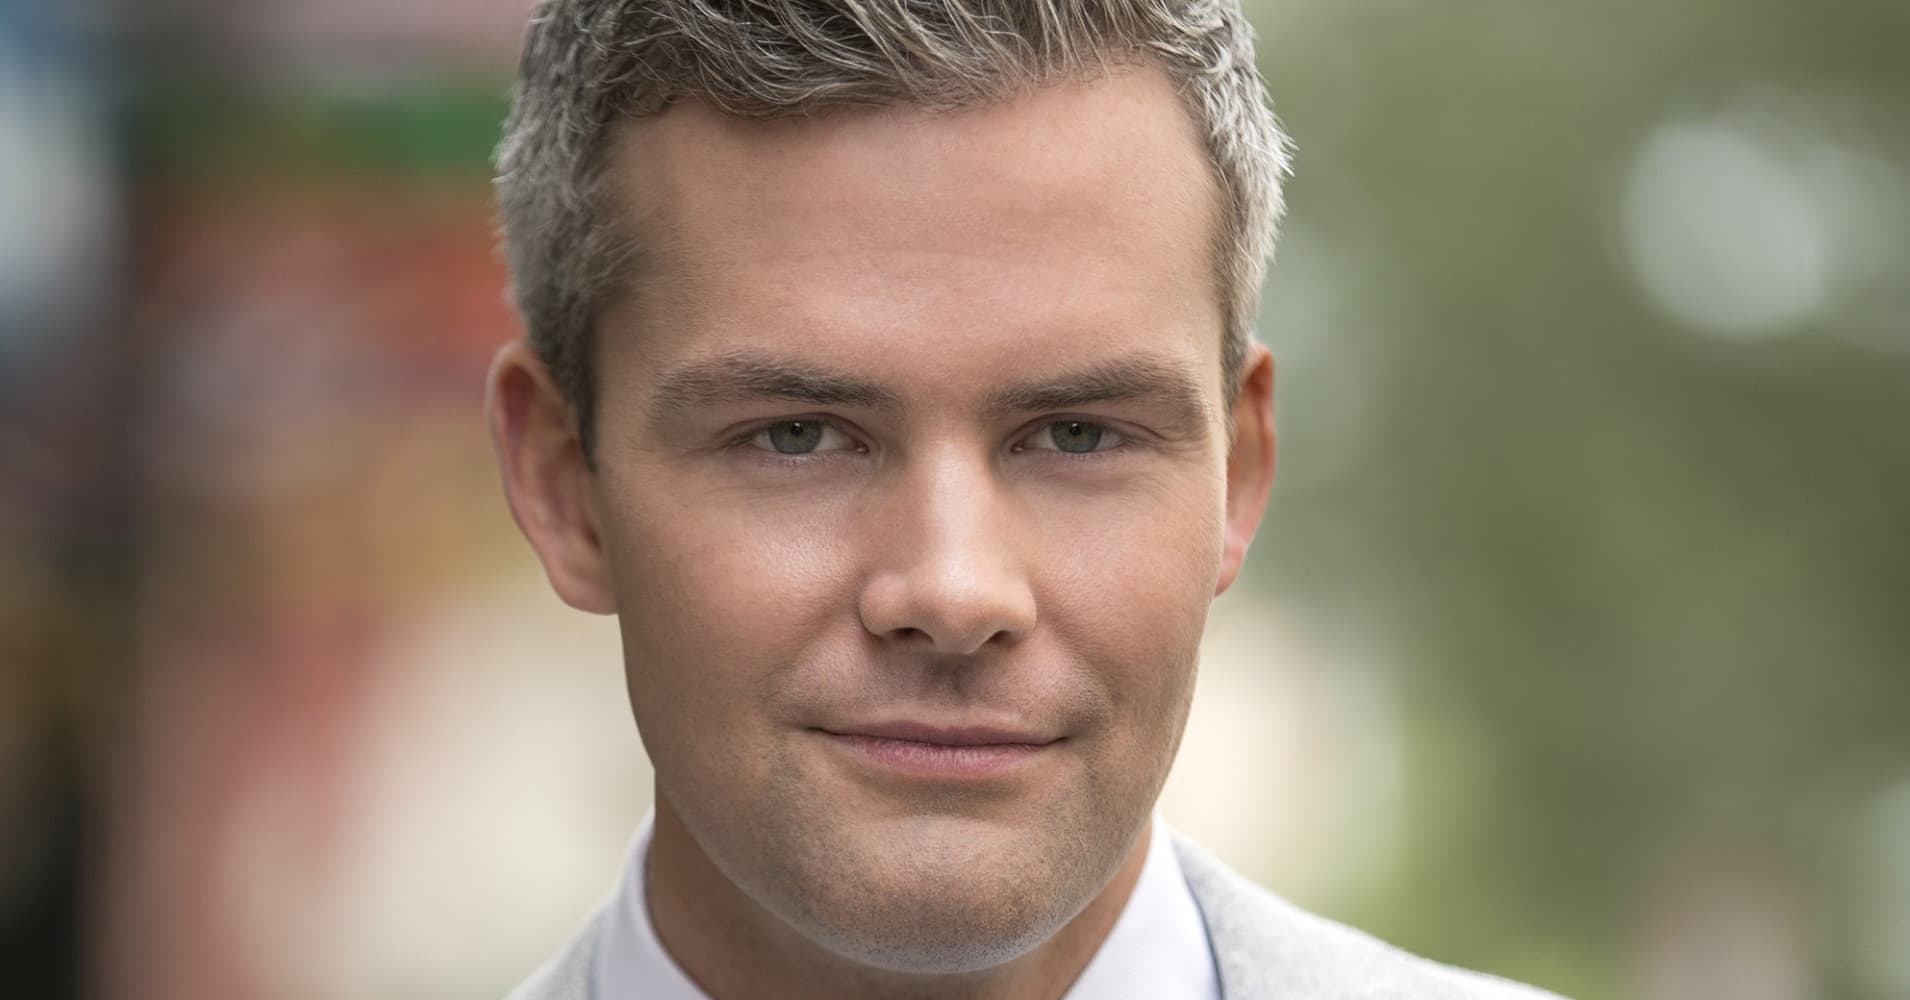 'Million Dollar Listing' star Ryan Serhant started in real estate the day the market crashed — here's what he learned